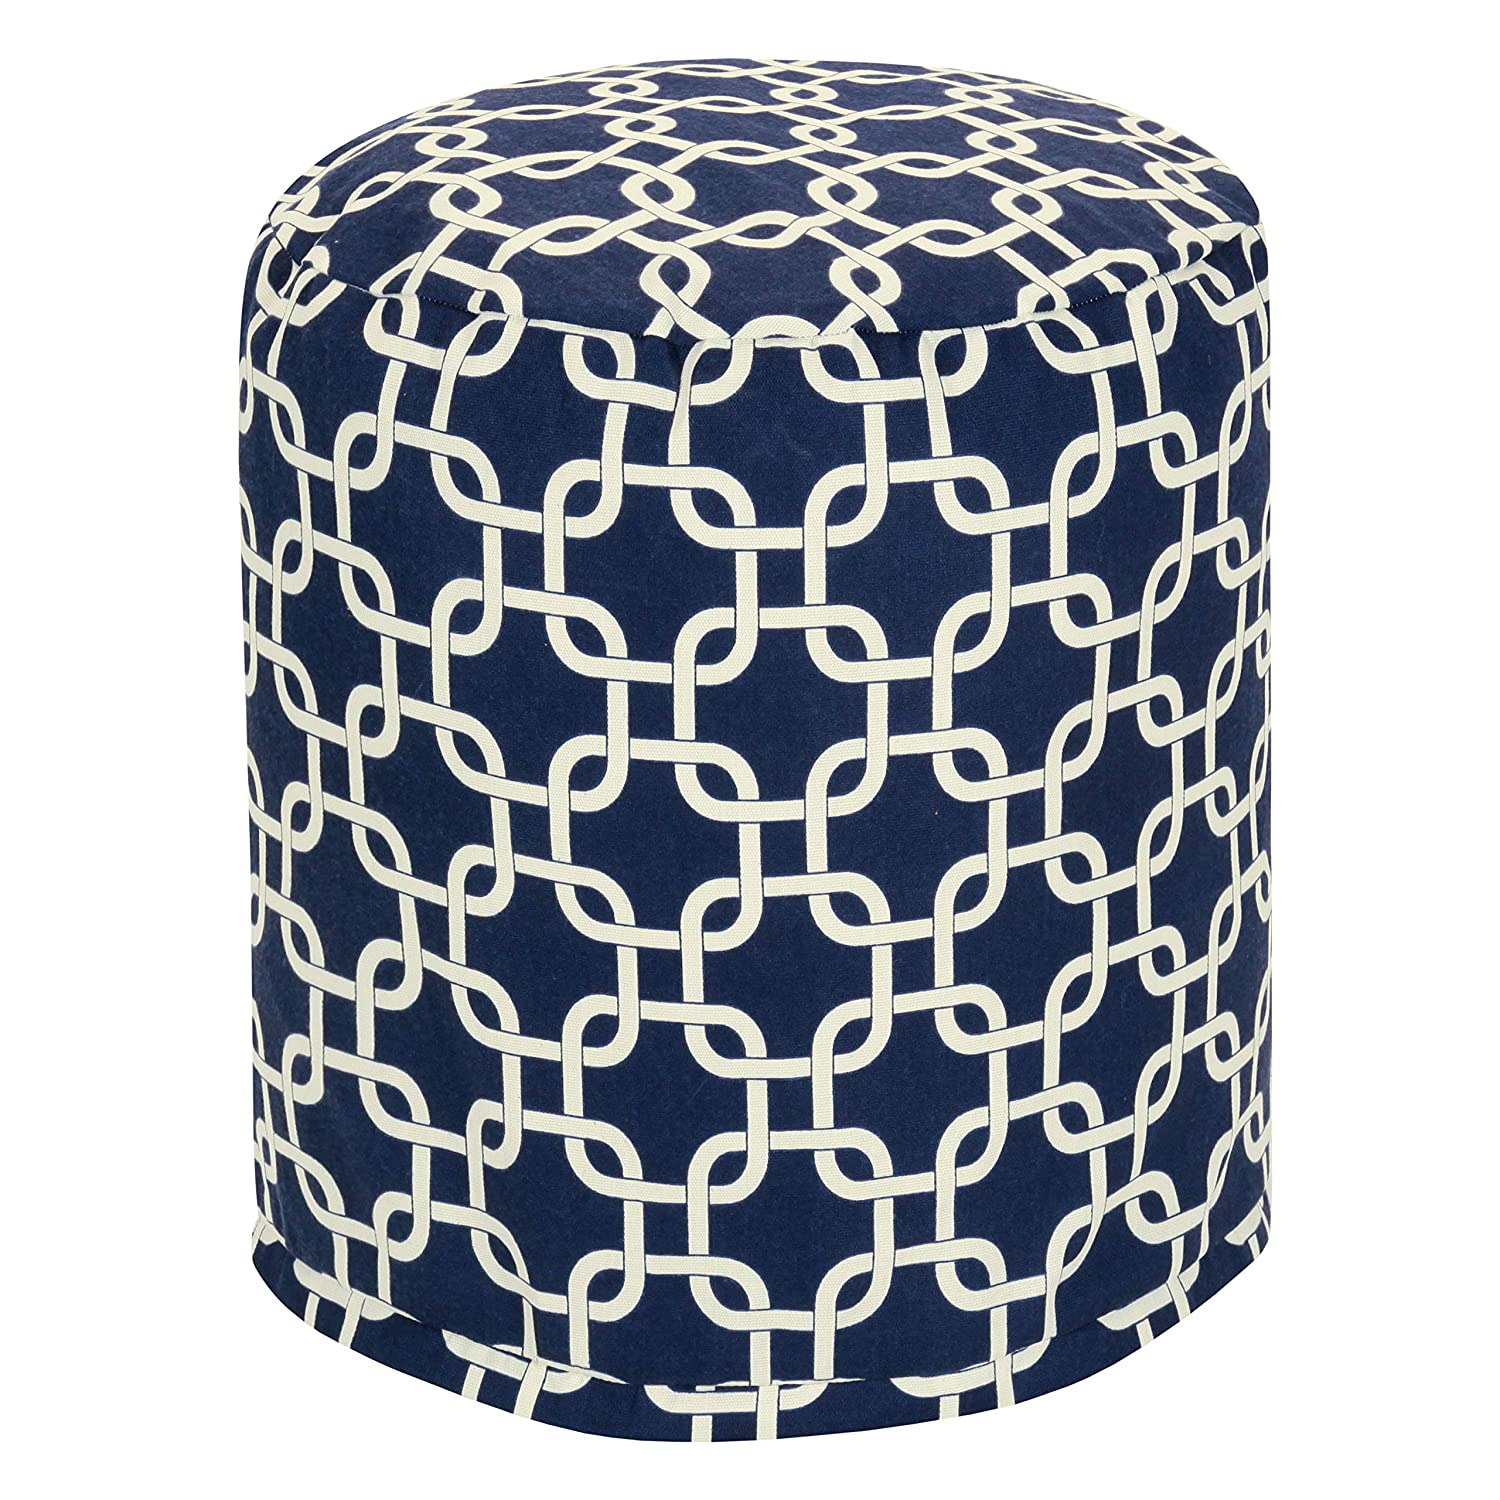 Majestic Home Goods Navy Blue Links Indoor Outdoor Bean Bag Ottoman Pouf 16 L x 16 W x 17 H